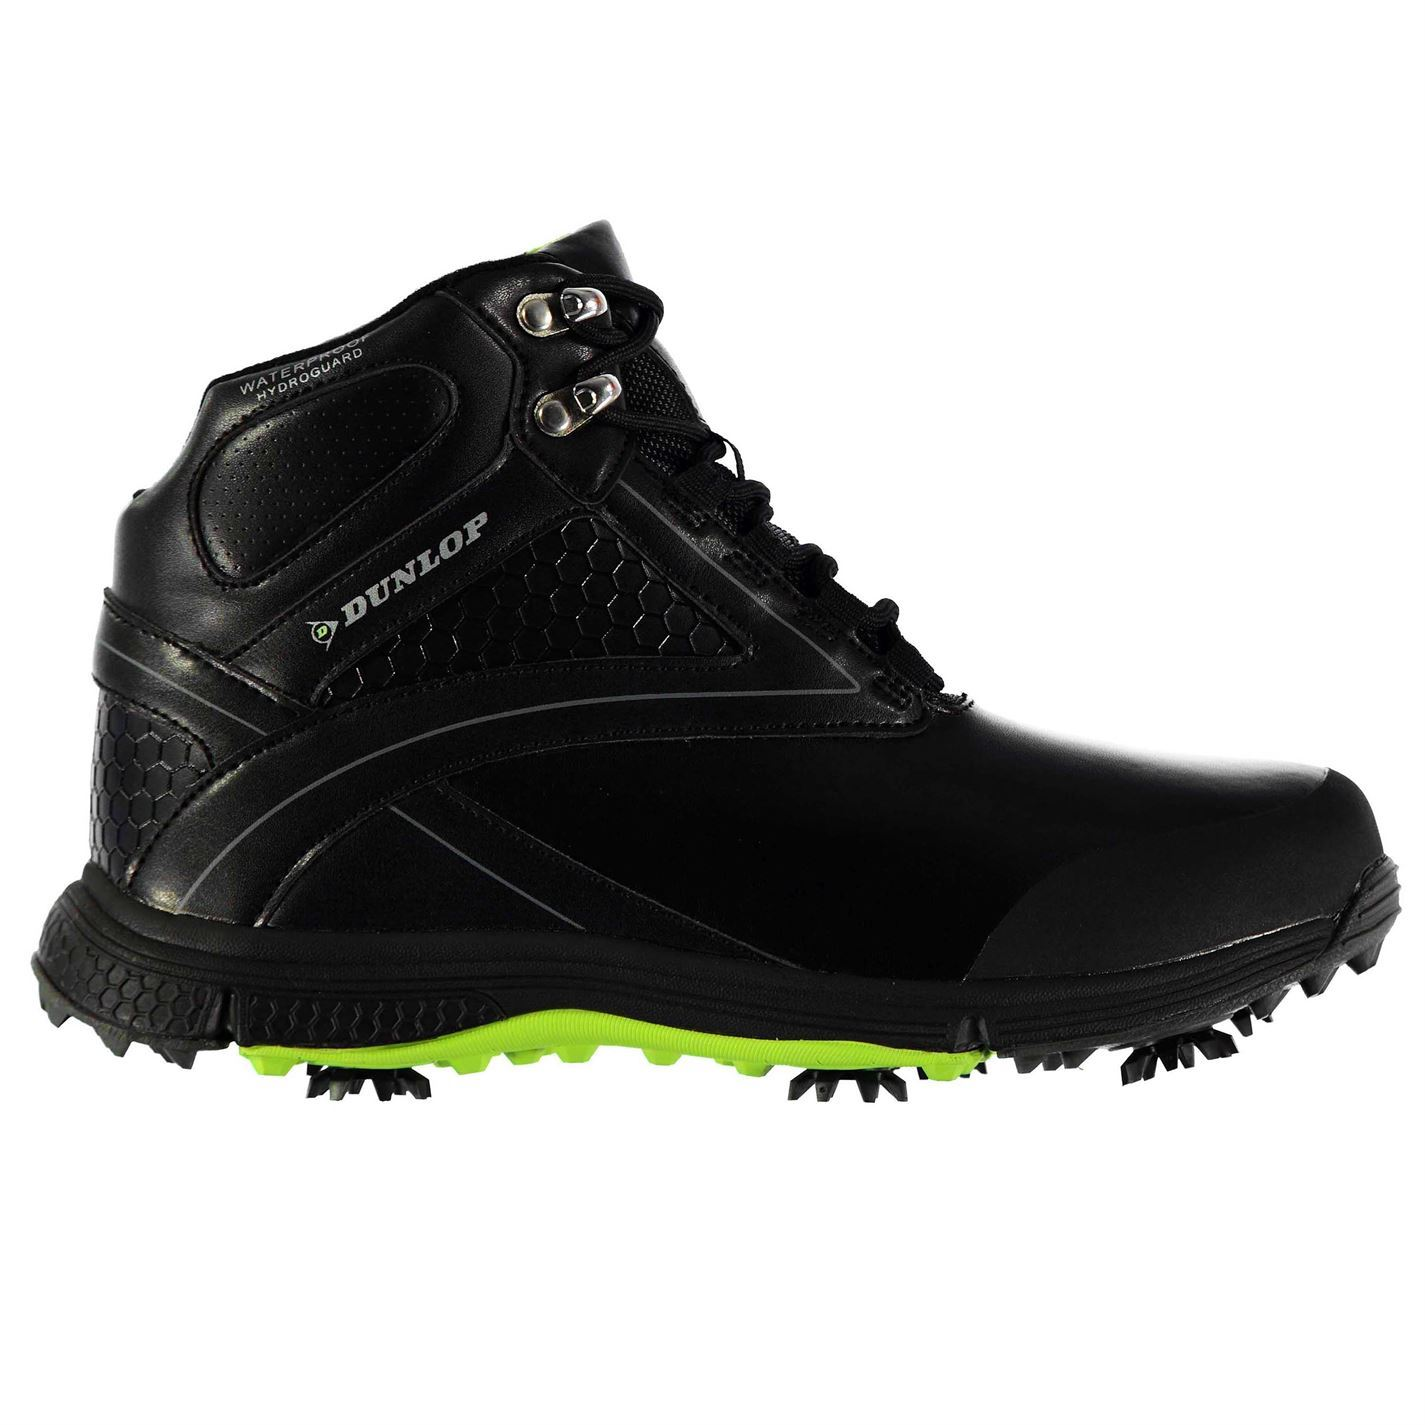 dunlop mens biomimetic 300 golf boots lace up waterproof